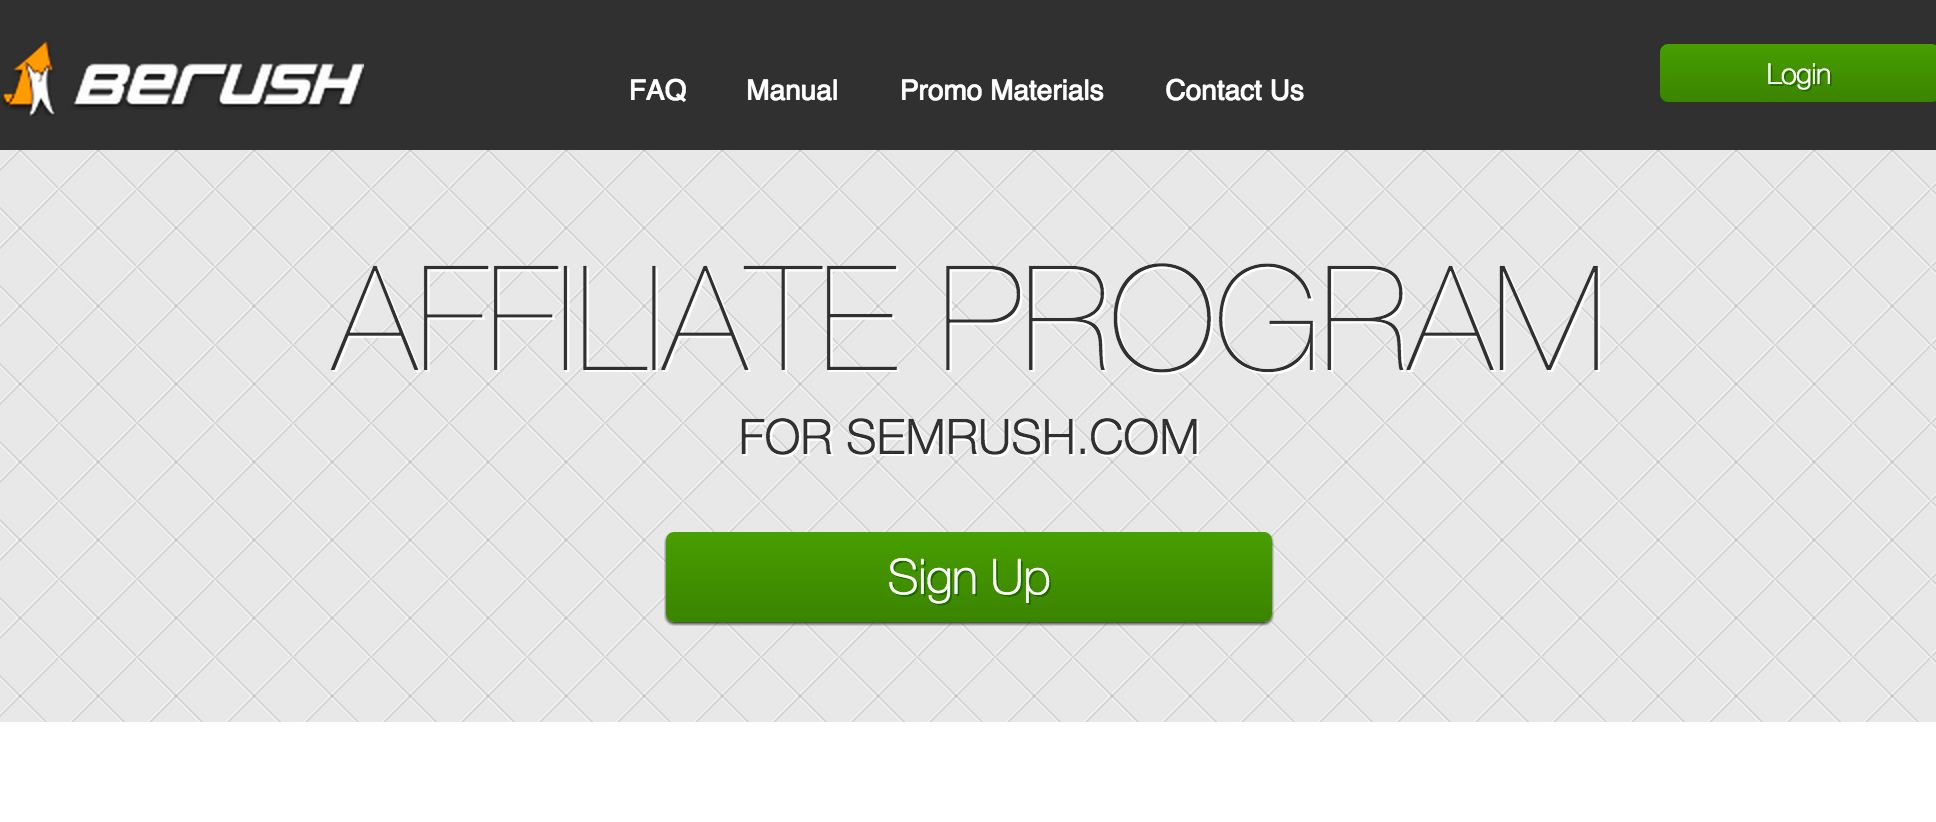 SEMRush - SEO Affiliate Programs